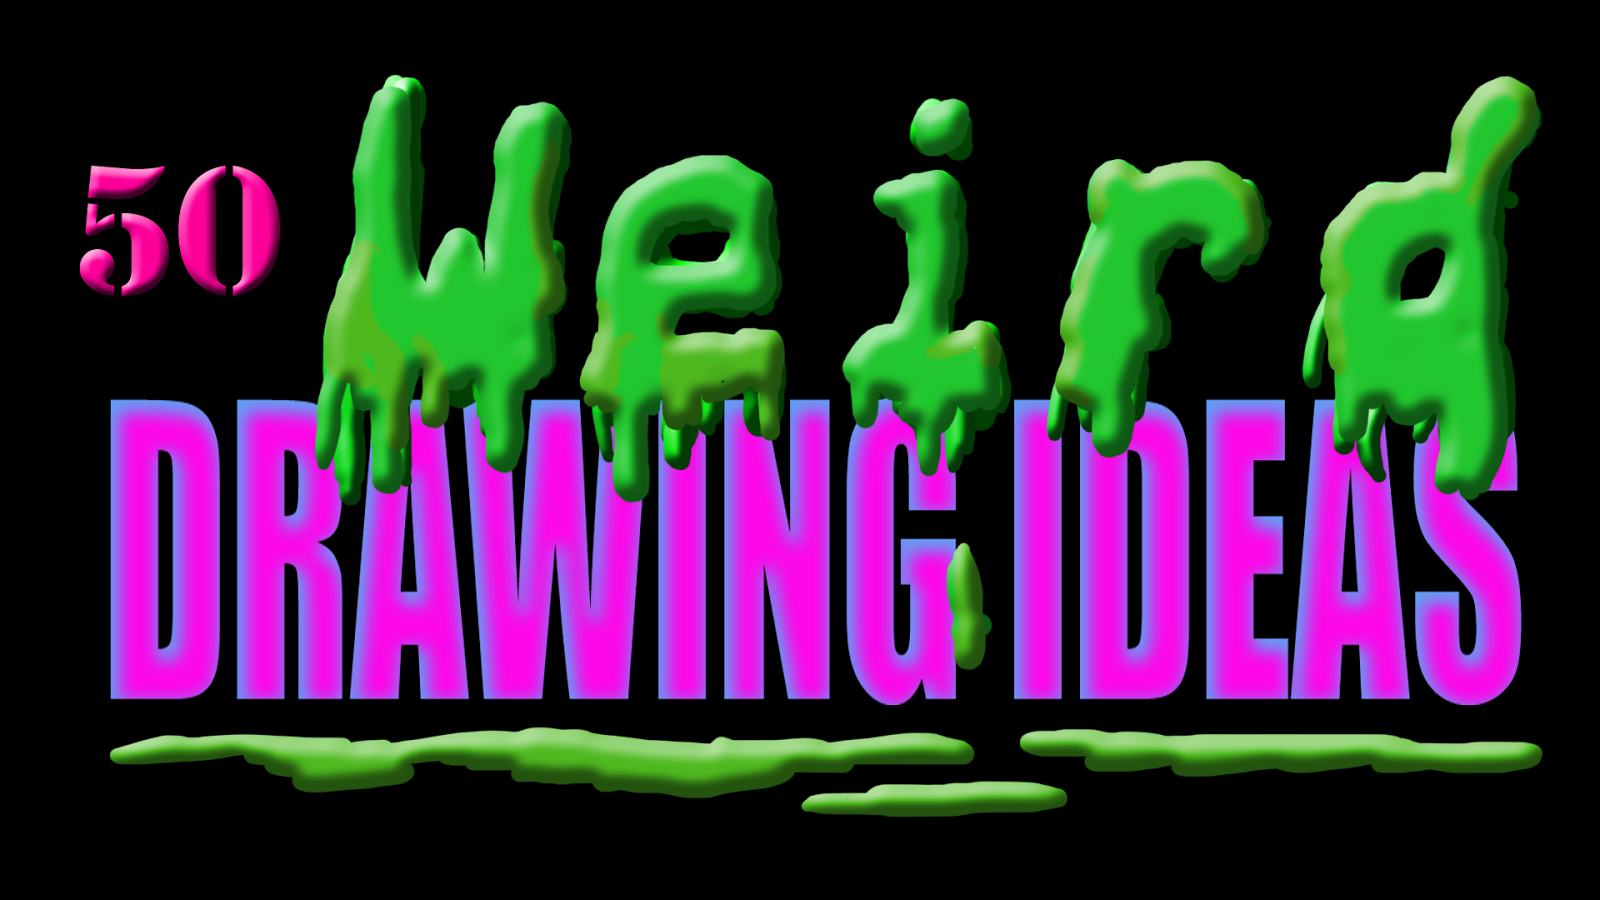 Drawing Ideas For Kids 167 Weird Drawing Ideas Students Love This drawing prompt generator is designed to help you unleash your creativity. drawing ideas for kids